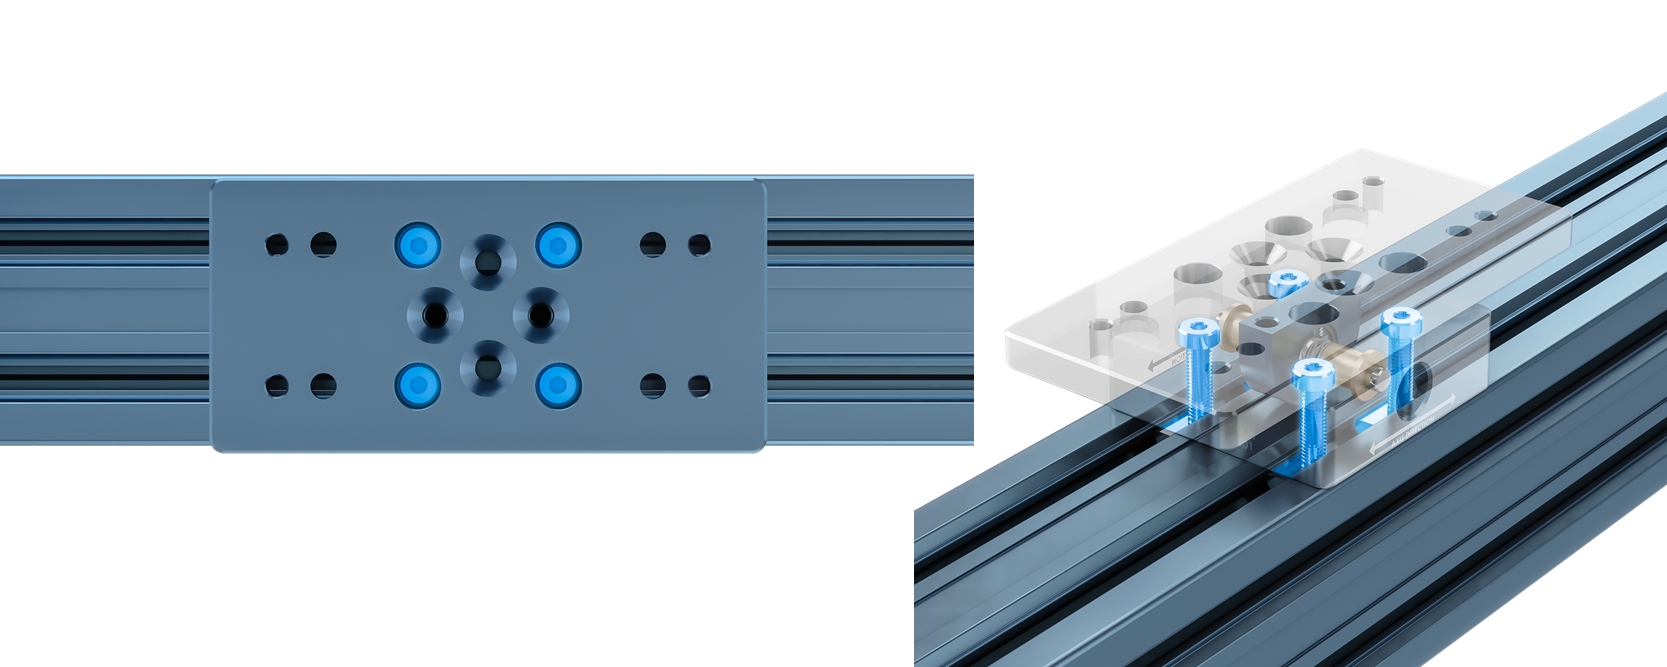 Figure 6: Install fasteners in these counterbores (highlighted in blue) to attach the self-aligning mount to the extrusion frame.